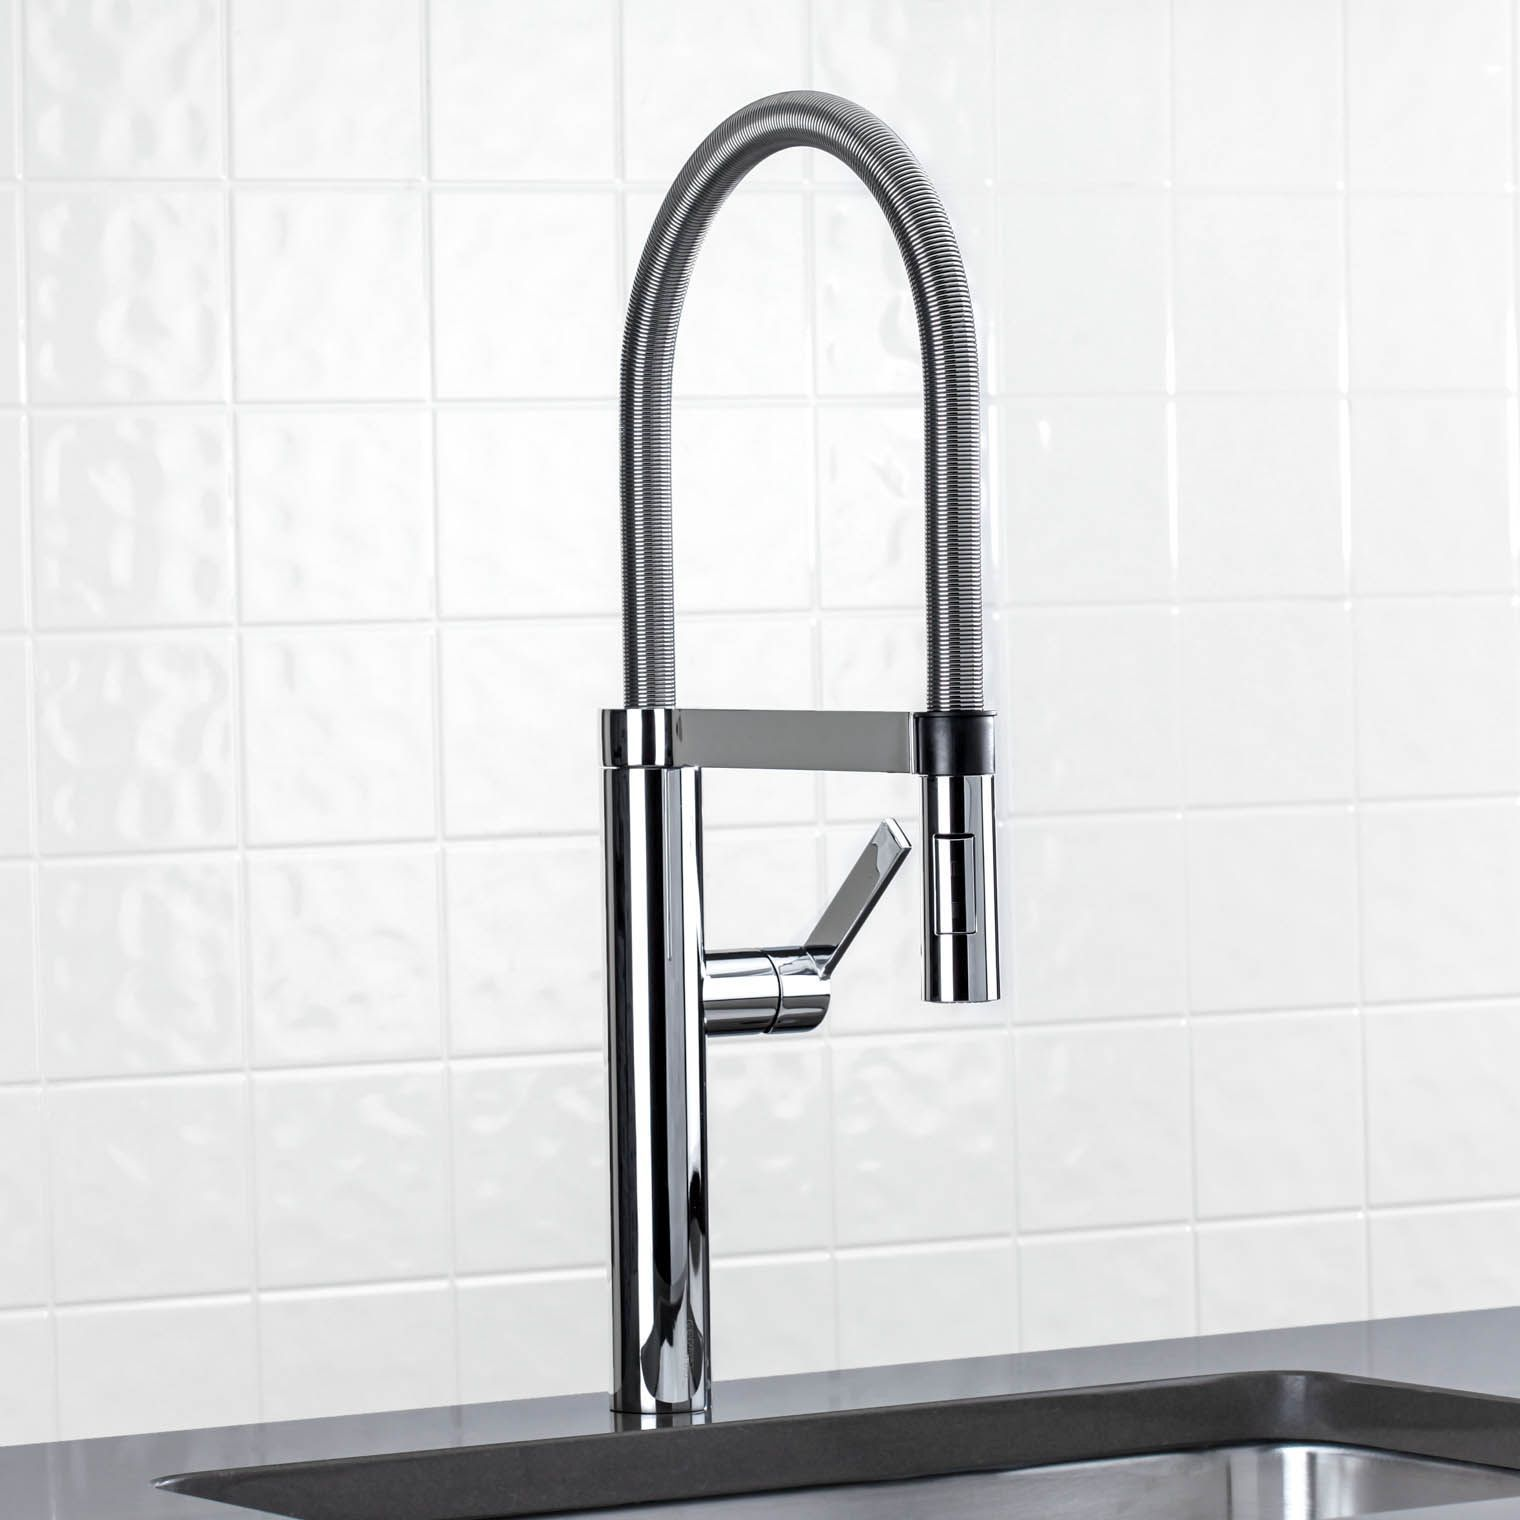 blanco fresh of also kitchen professional beautiful culina faucet meridian semi images faucets